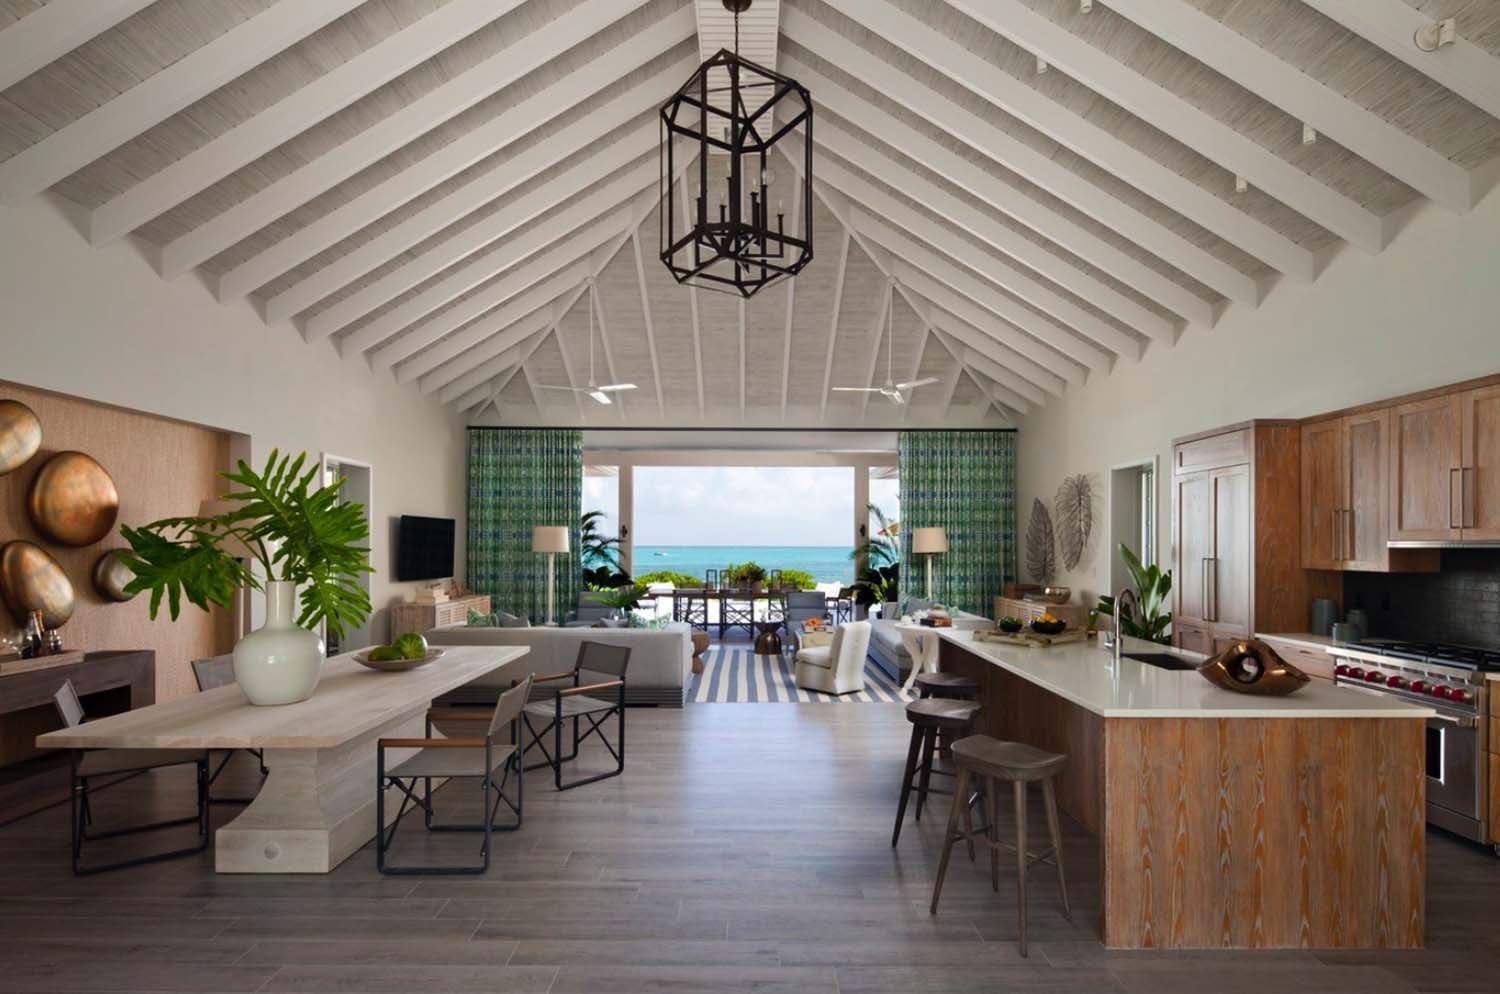 Luxurious Grace Bay Club Residence on Turks and Caicos Island